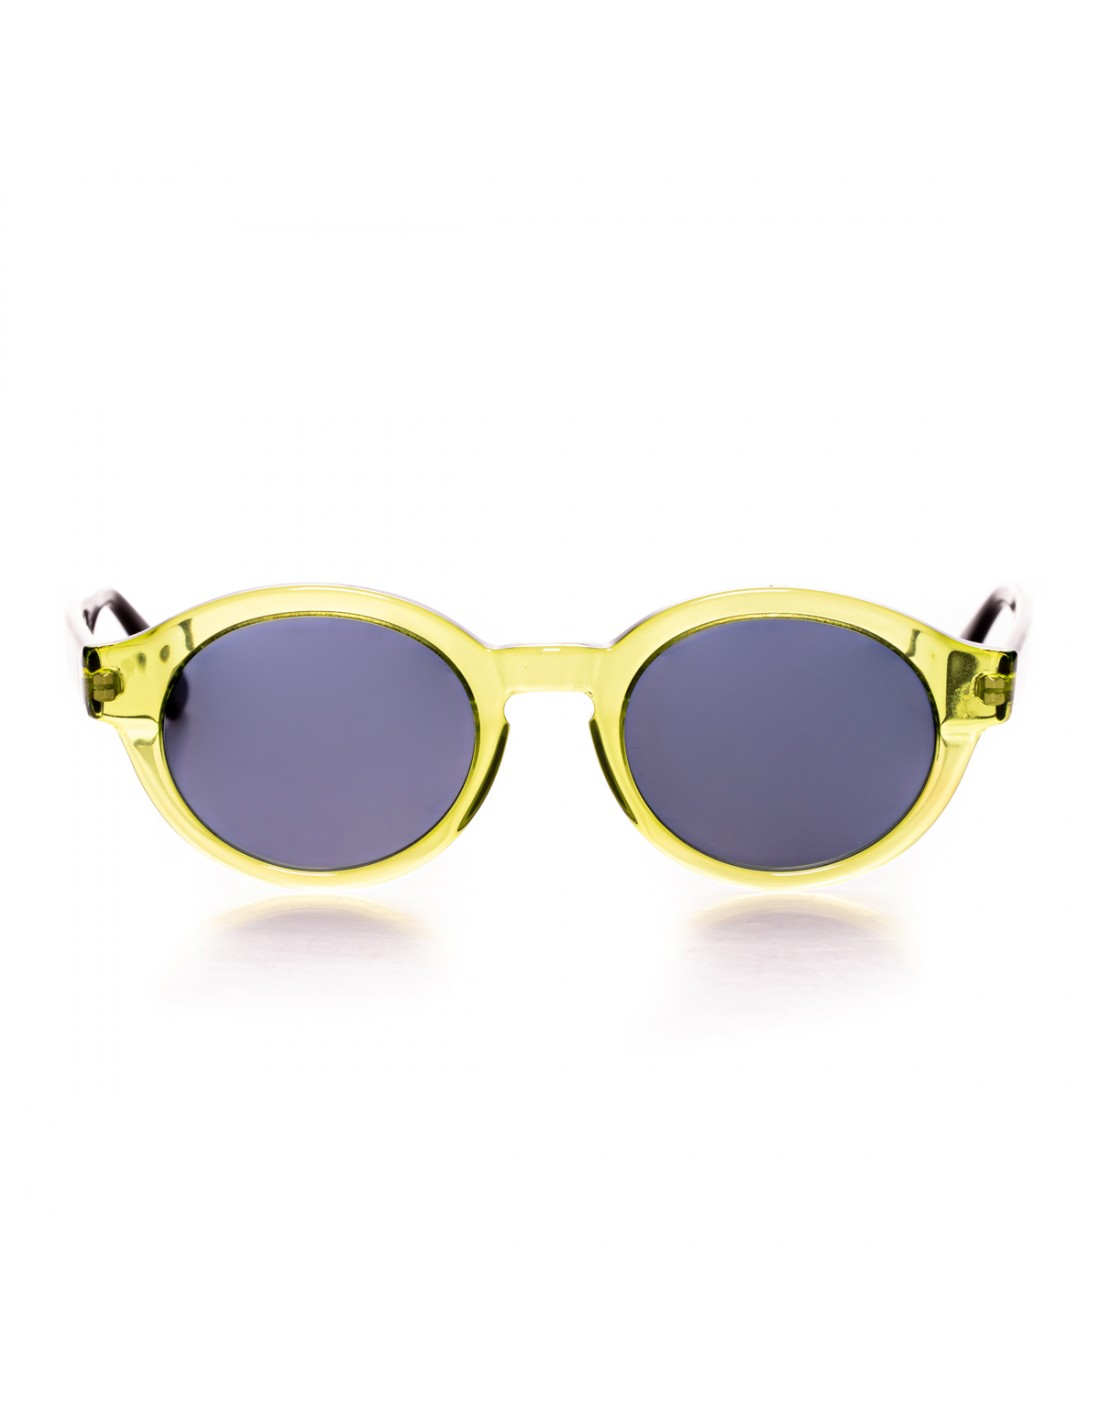 Women's sunglasses made in Italy